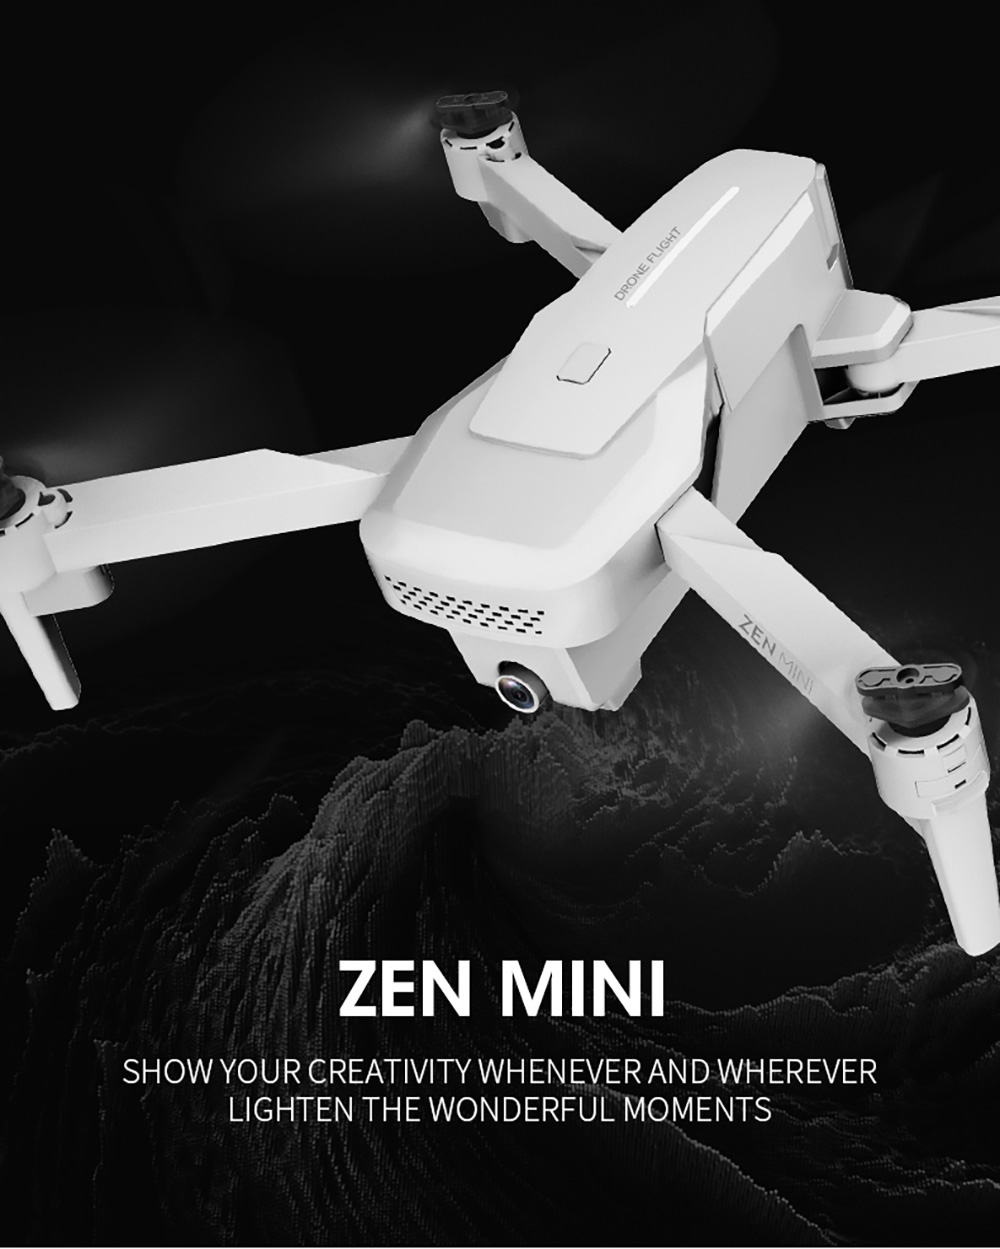 VISUO XS818 ZEN Mini GPS 5G WIFI FPV with 4K HD Electronic Anti-shake Camera Optical Flow Positioning RC Drone Quadcopter RTF - Gray 1 Battery with Color Box